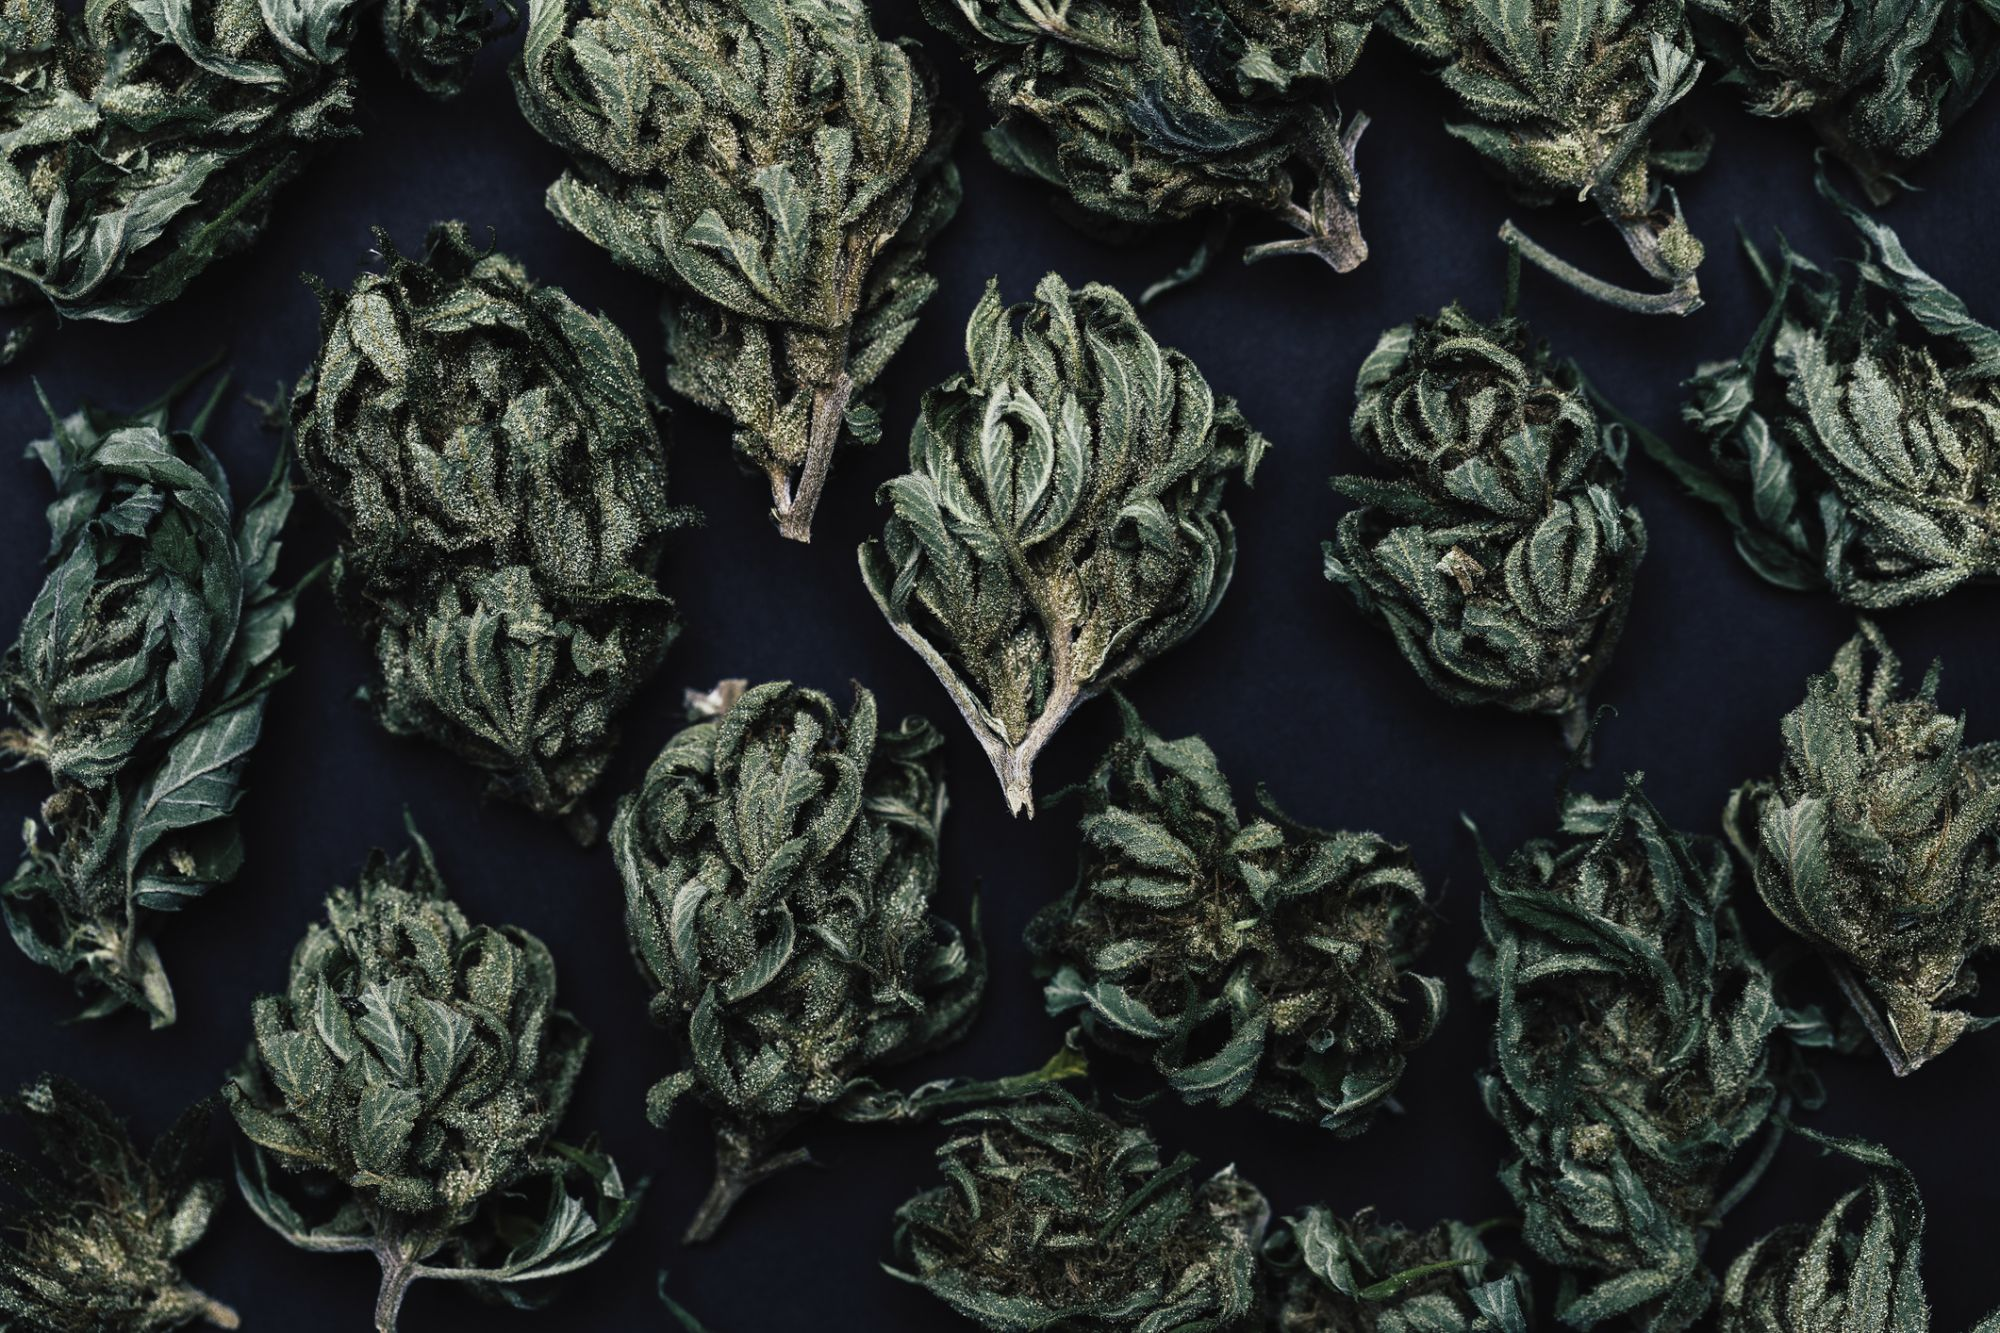 5 New Cannabis Trends You Need to Know